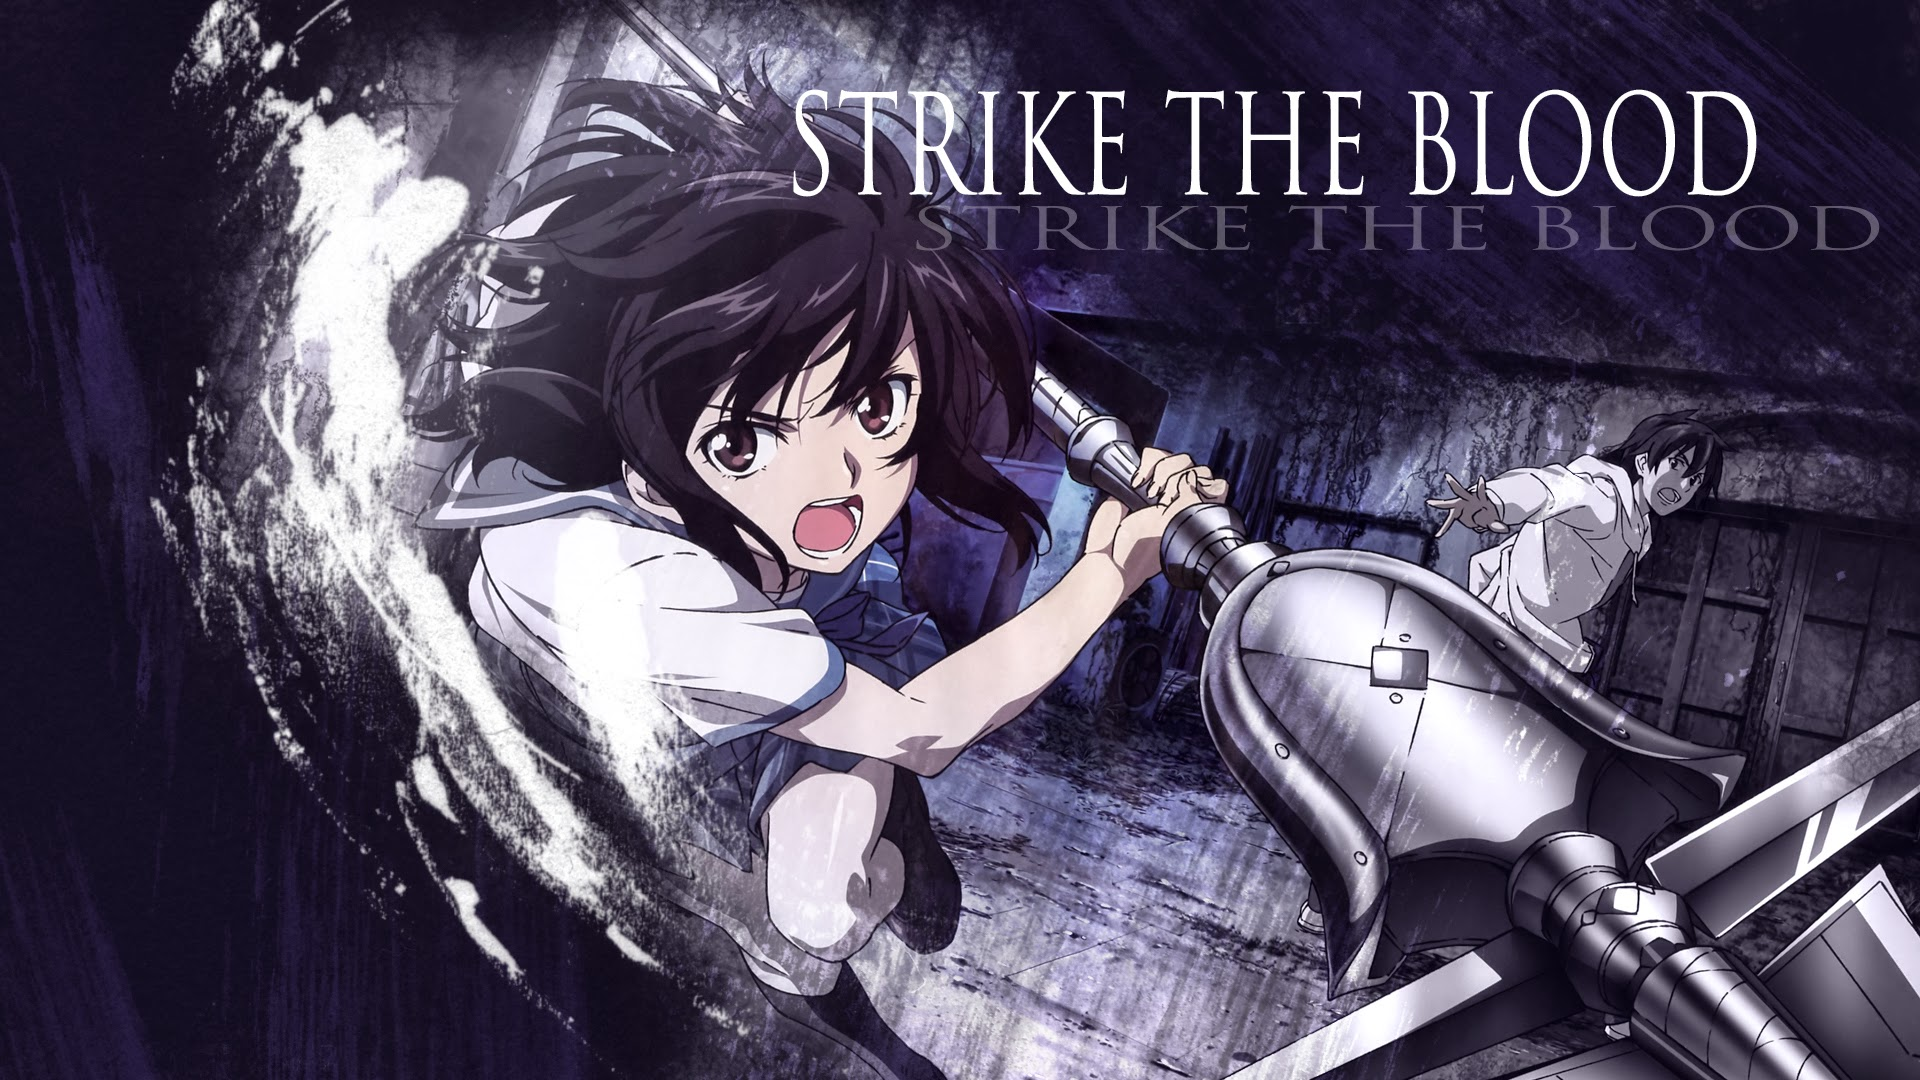 Strike the Blood 6jgiLBzl3U8AtZa8jx4binIV6RU